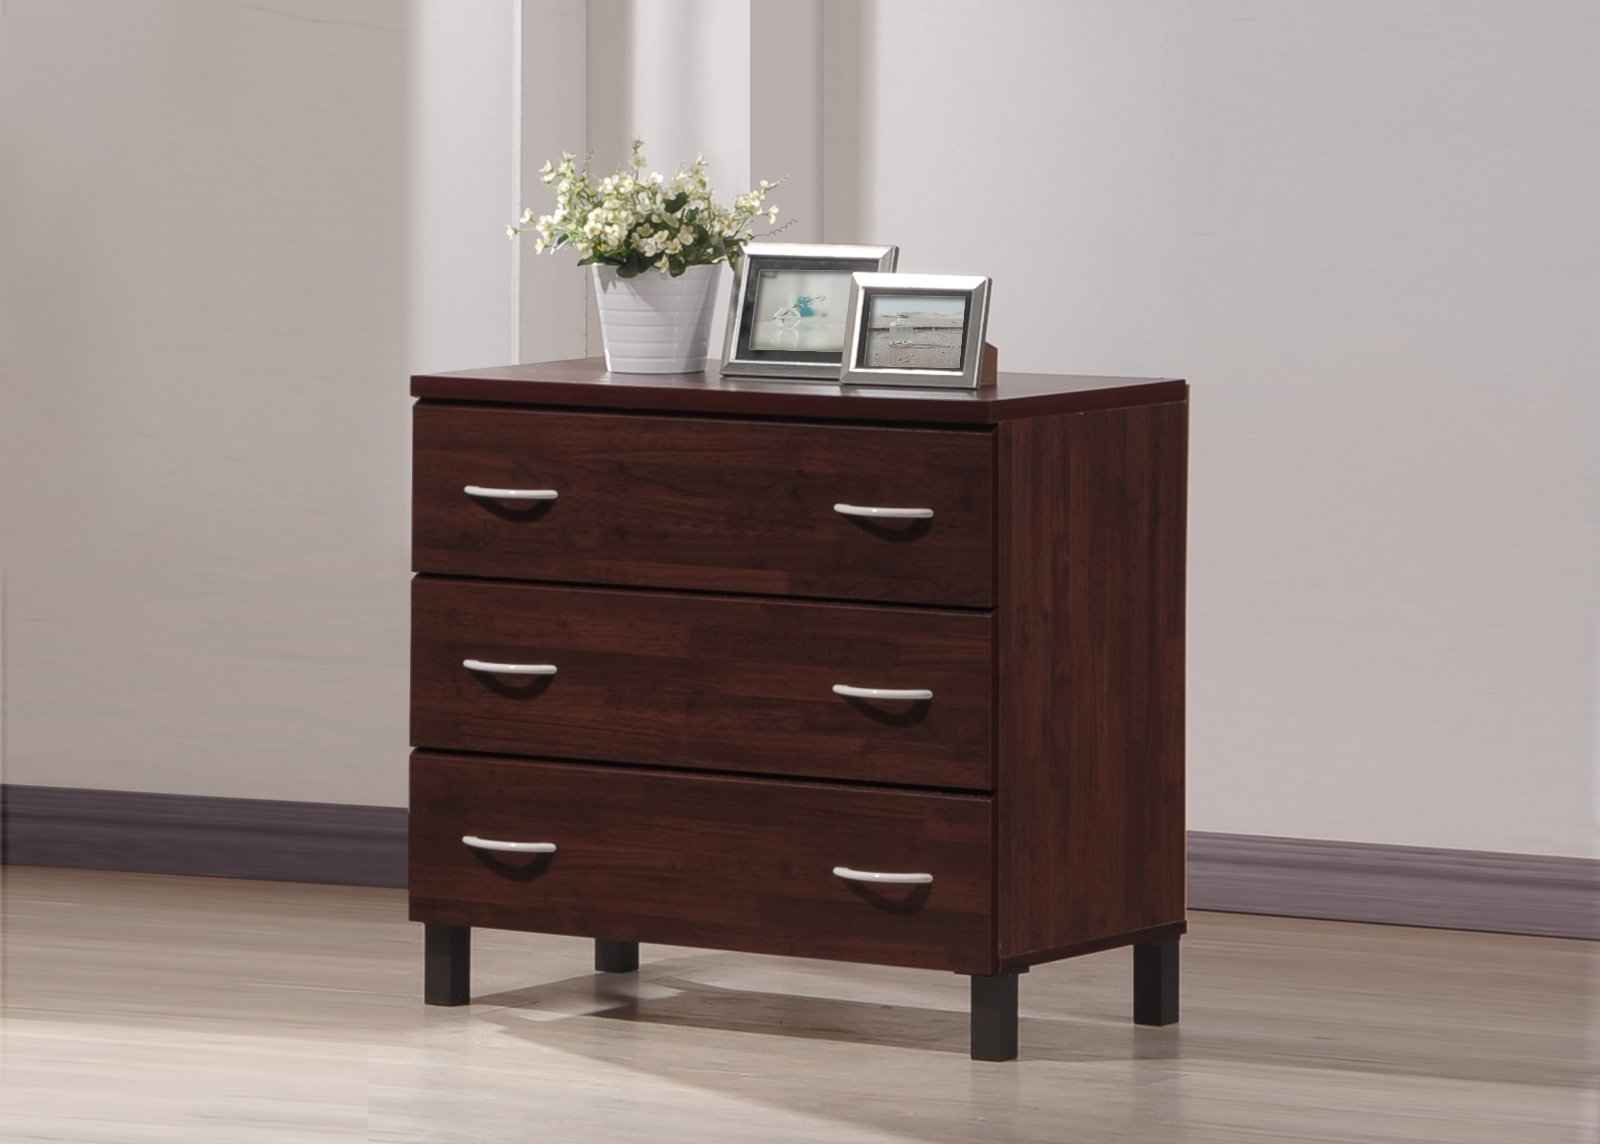 Wholesale Interiors Mason Finish Wood 3 Drawer Storage Chest, Oak Brown